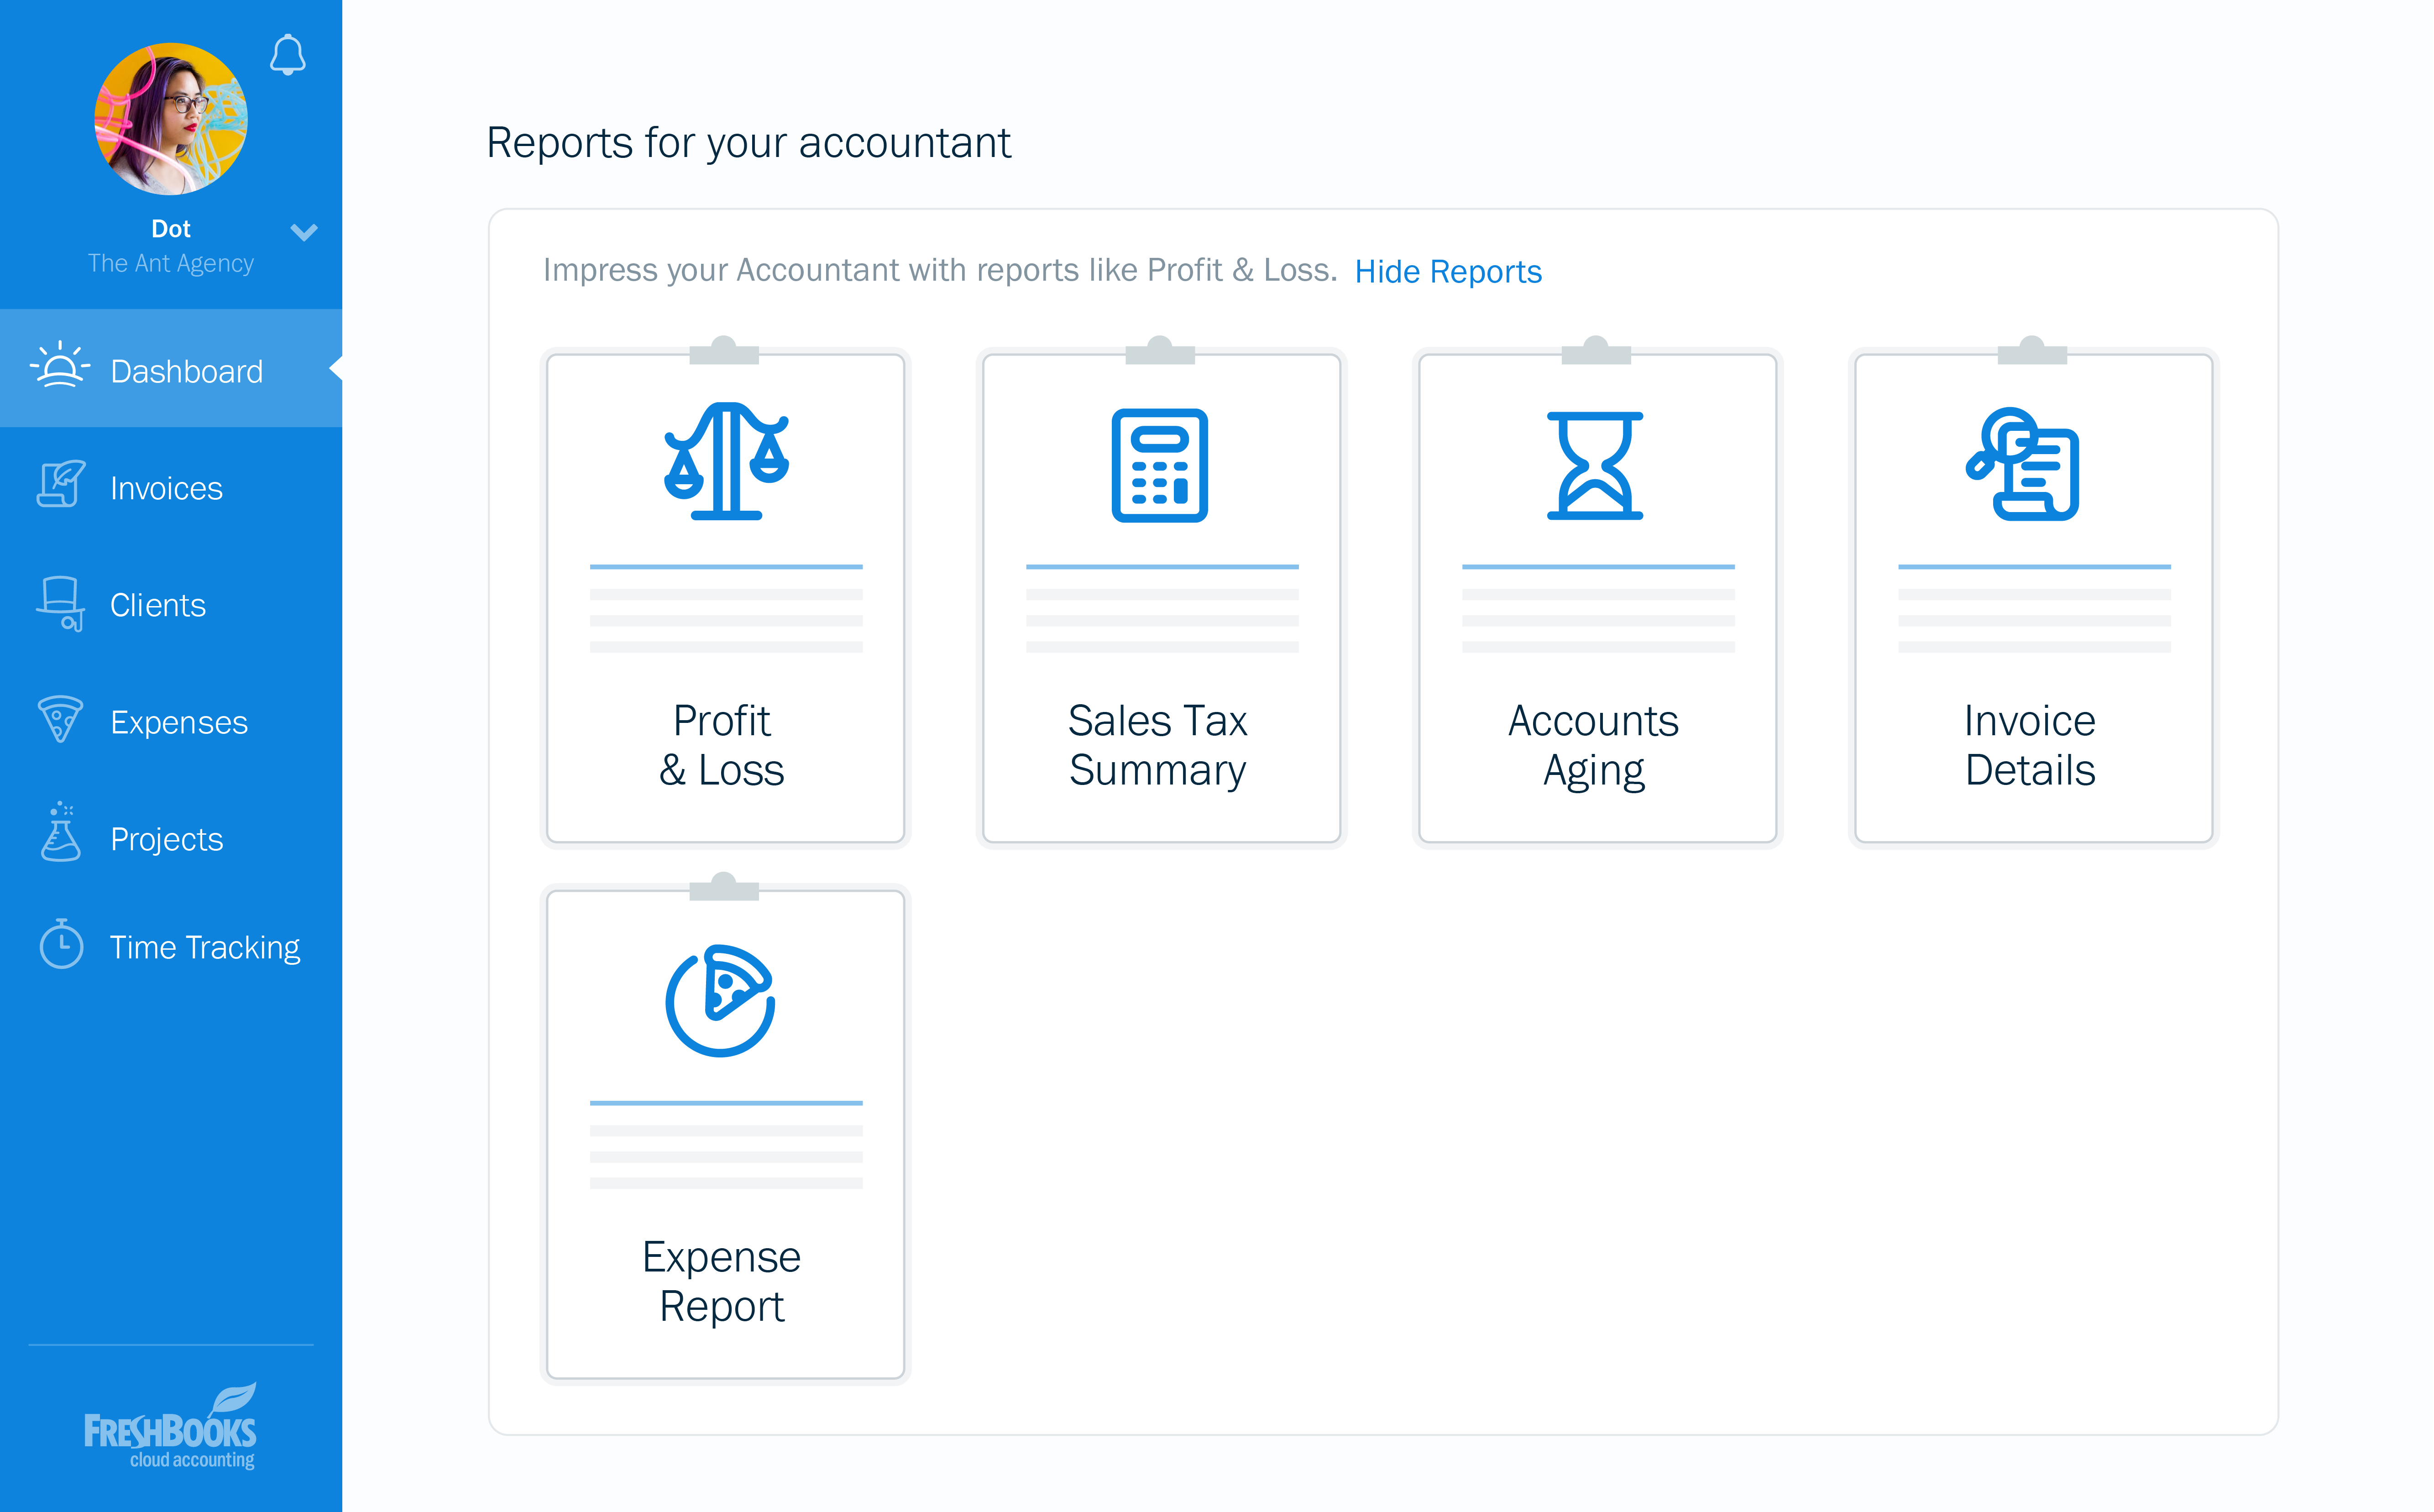 FreshBooks different types of reports dashboard screenshot